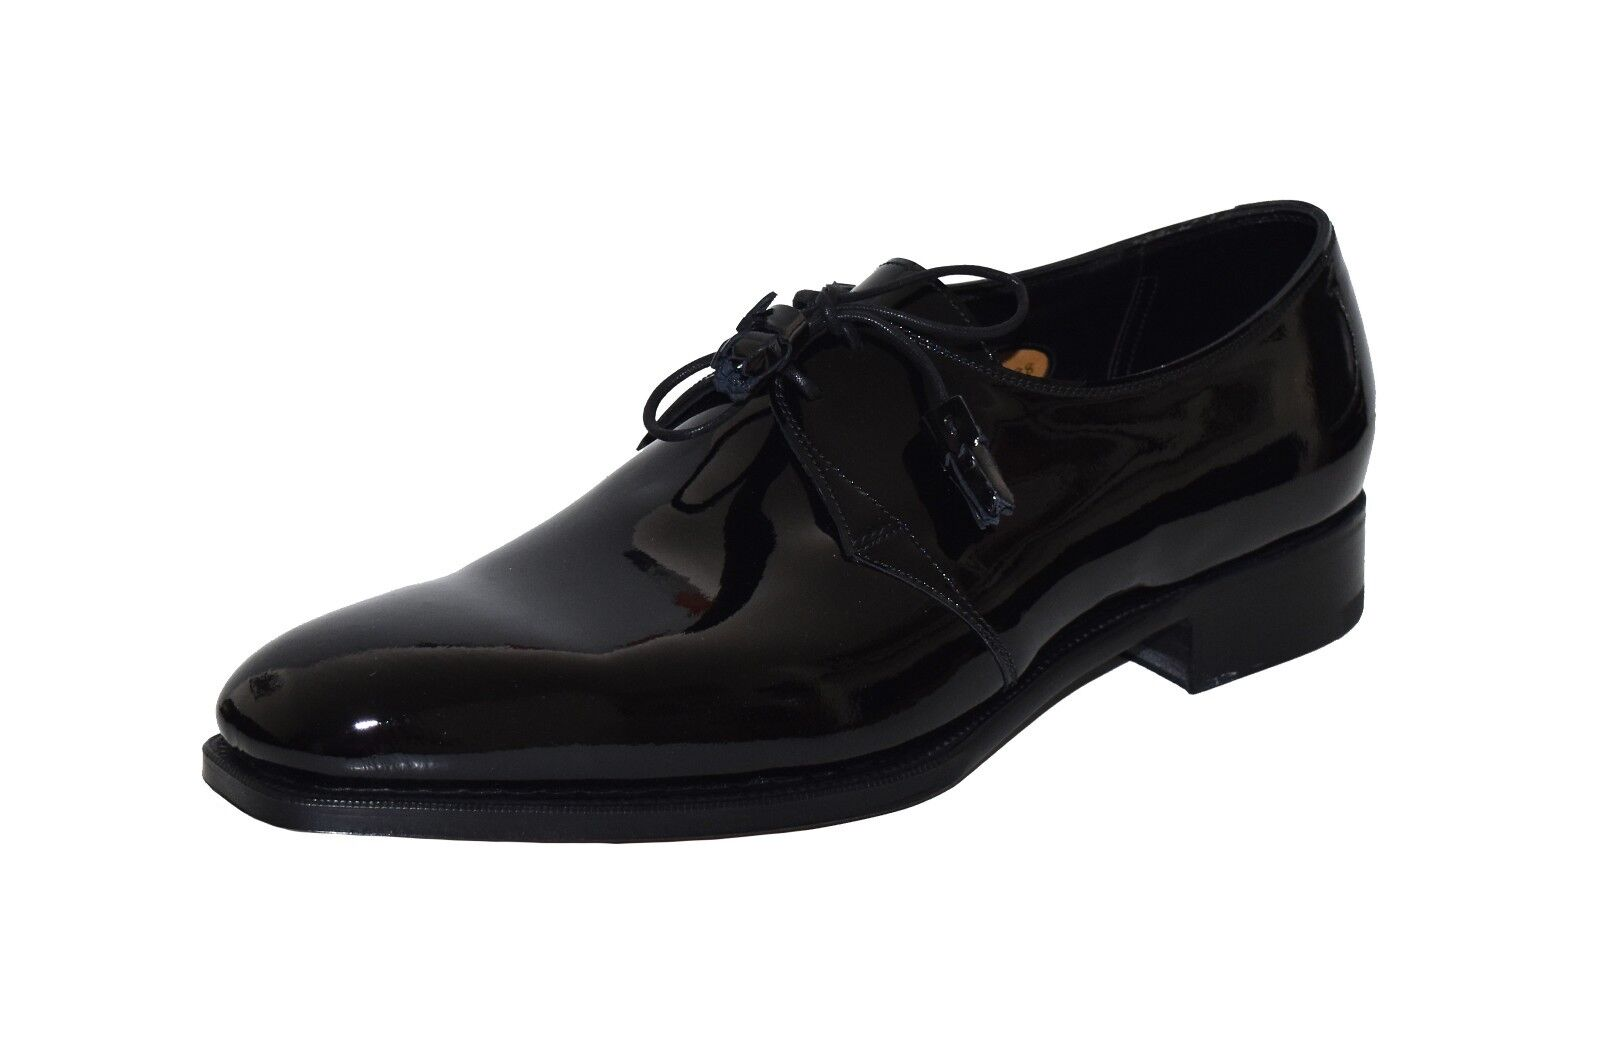 Ralph Lauren Purple Label Edward Green Patent Leather Paden Oxfords New $1350 Scarpe classiche da uomo